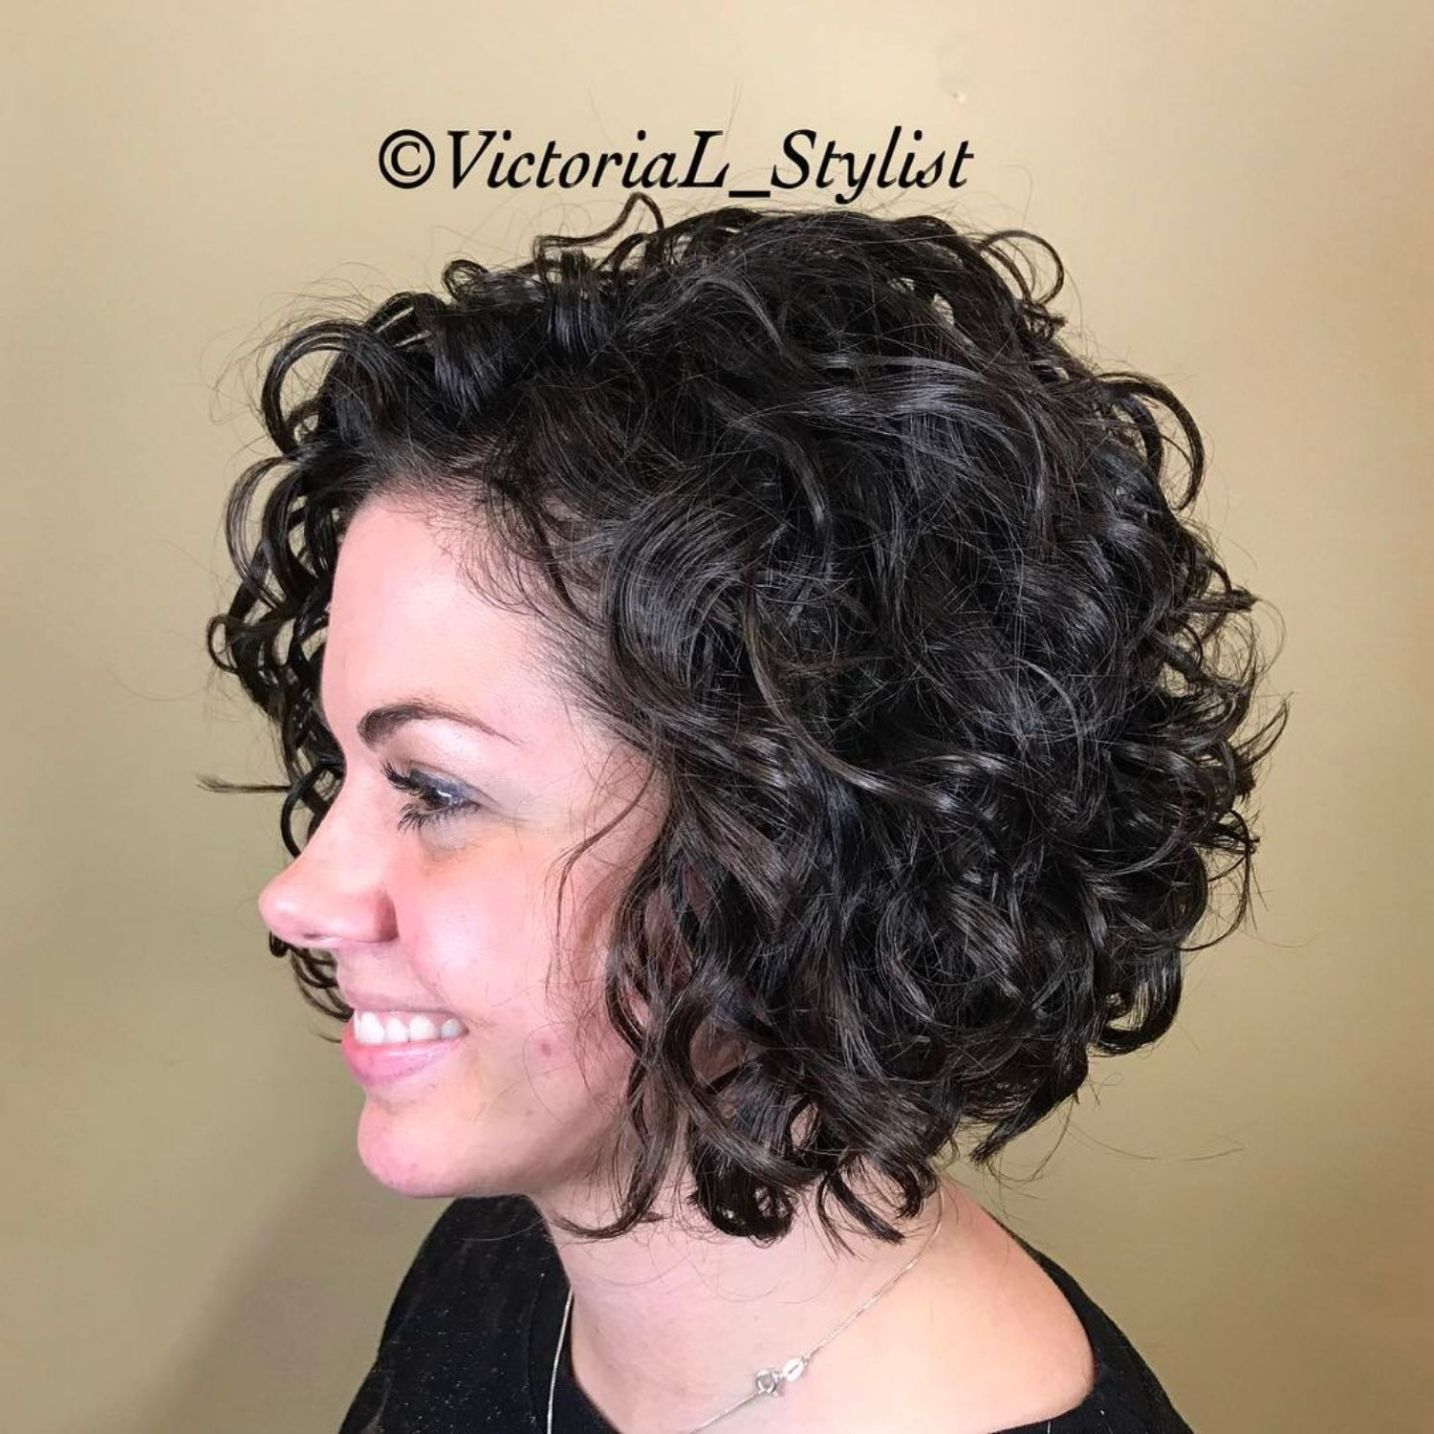 65 Different Versions Of Curly Bob Hairstyle Curly Hair Photos Bob Hairstyles Short Curly Hairstyles For Women